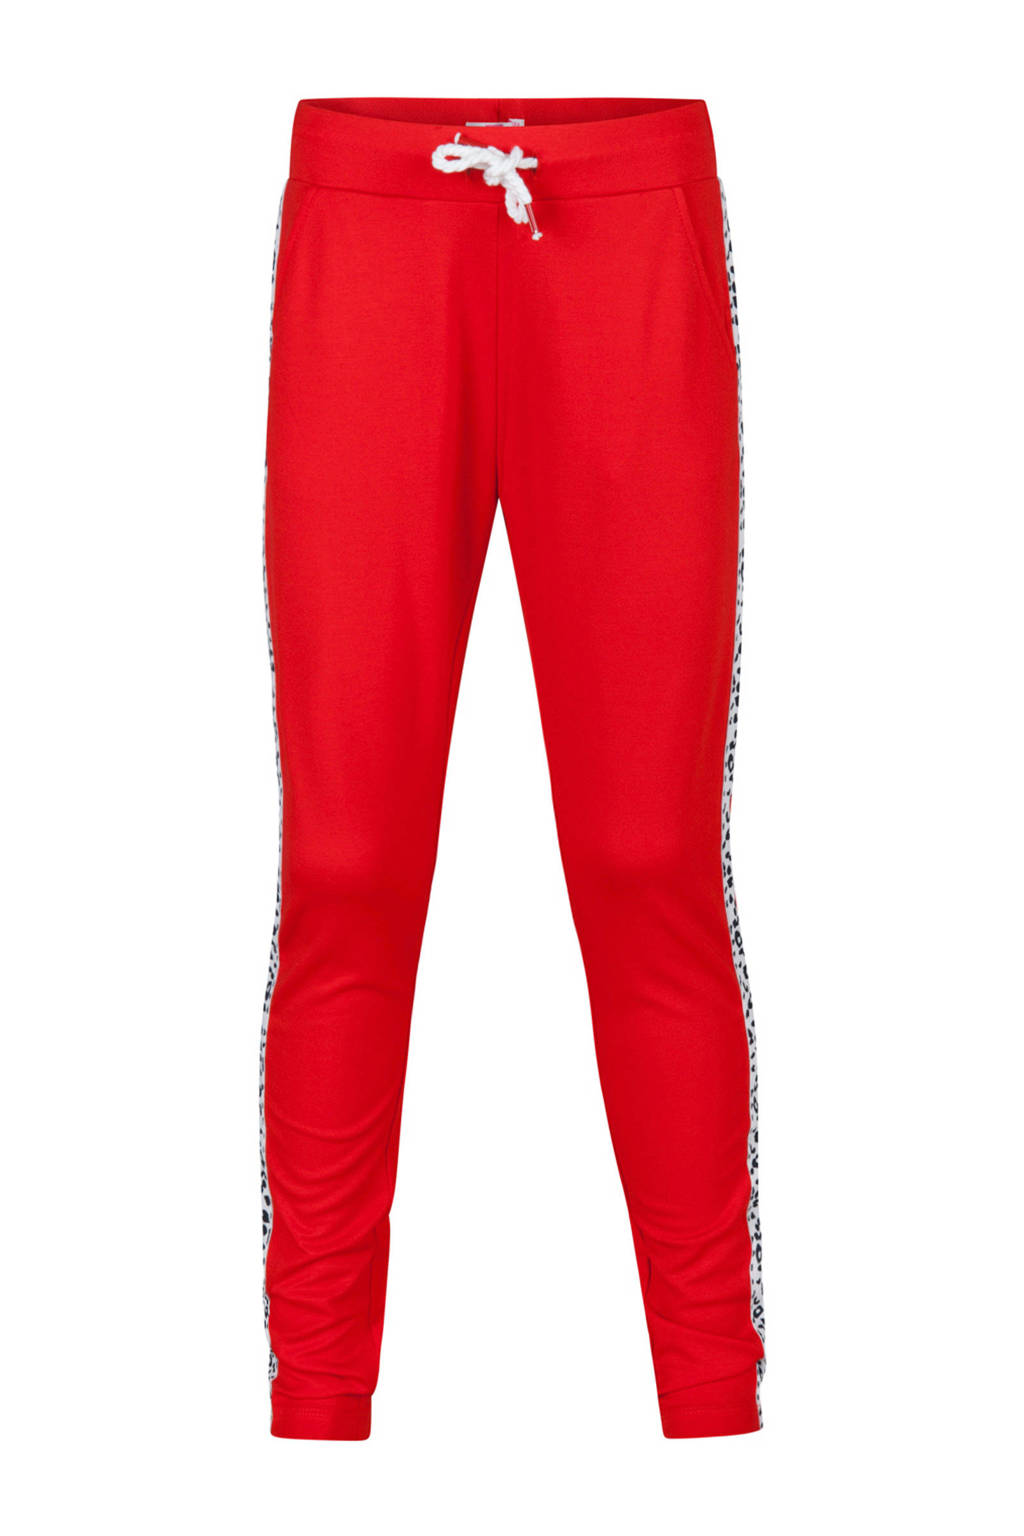 WE Fashion joggingbroek met zijstreep rood, Rood